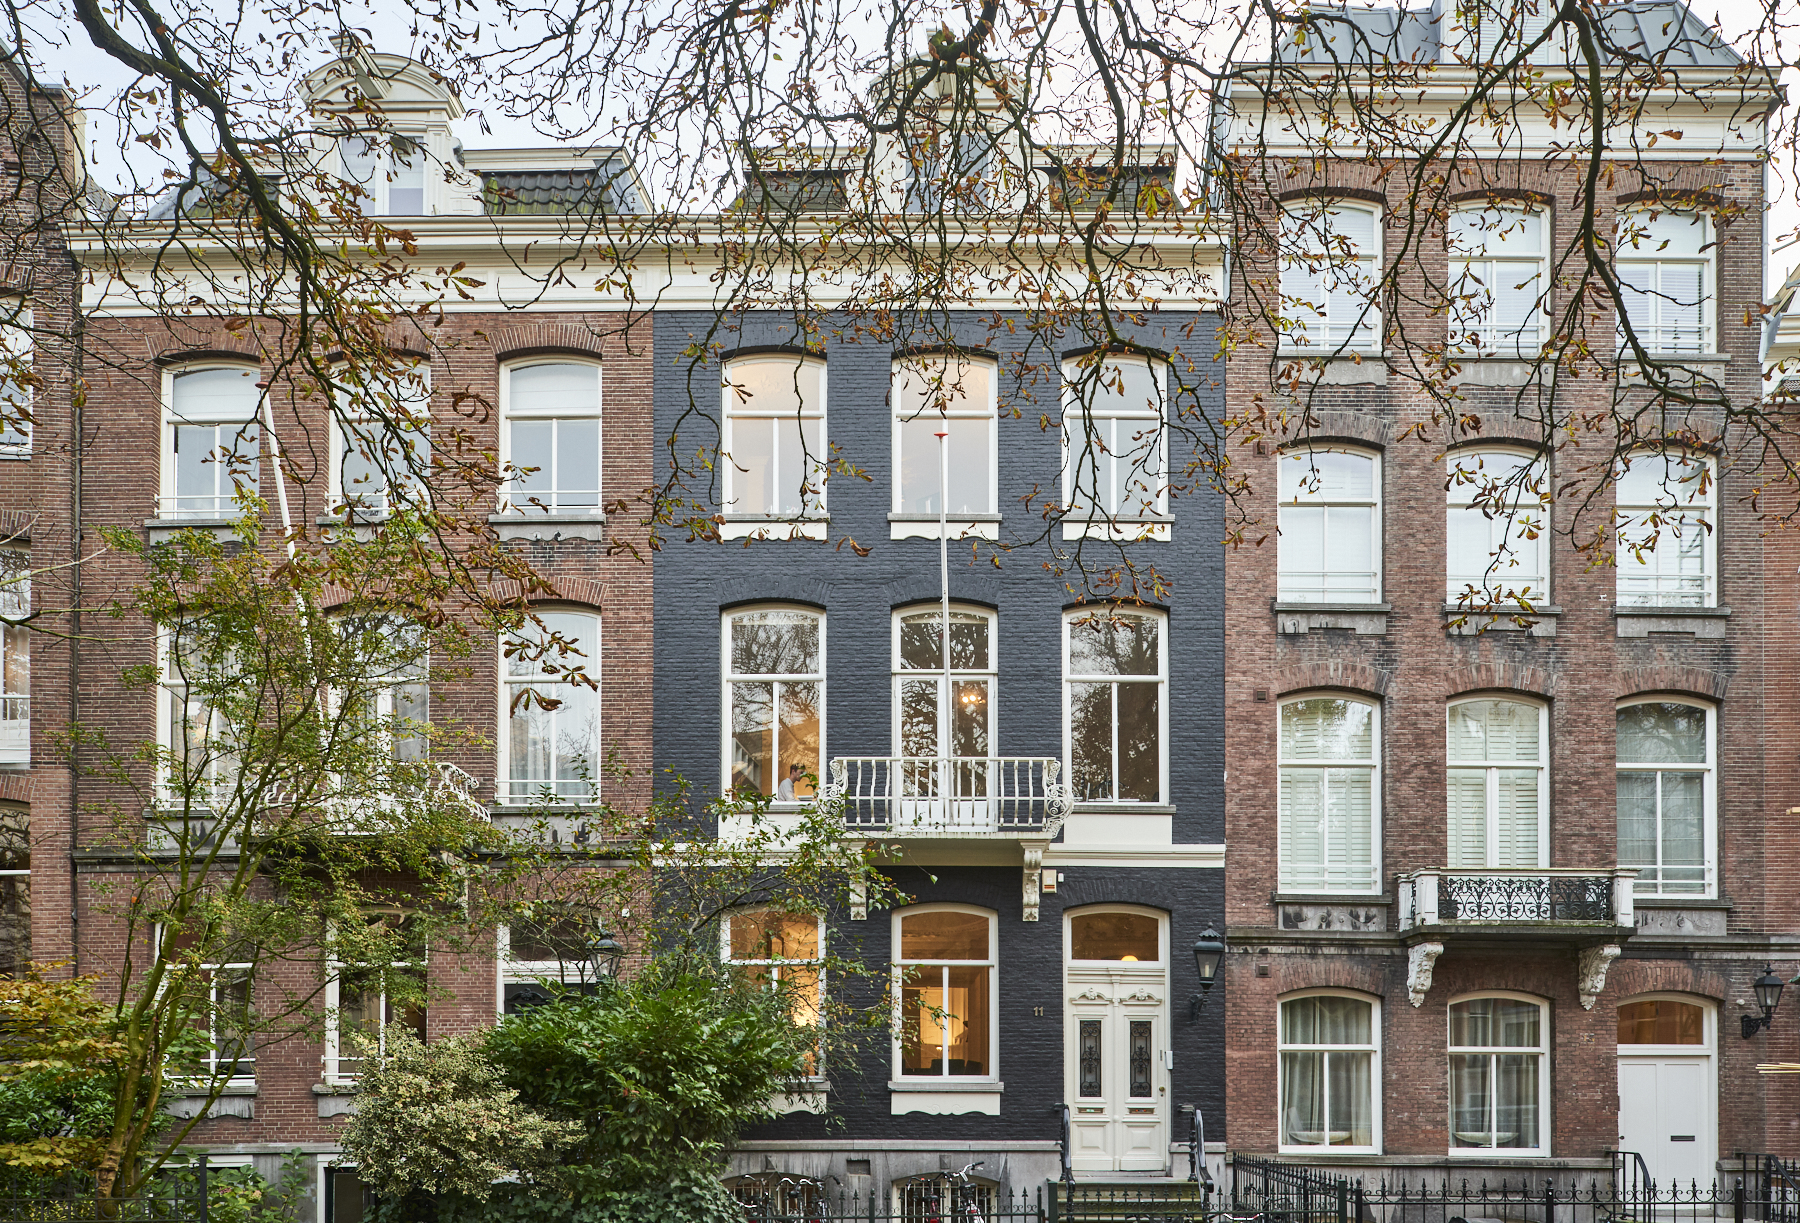 Our lovely office: Tesselschadestraat 11 in Amsterdam